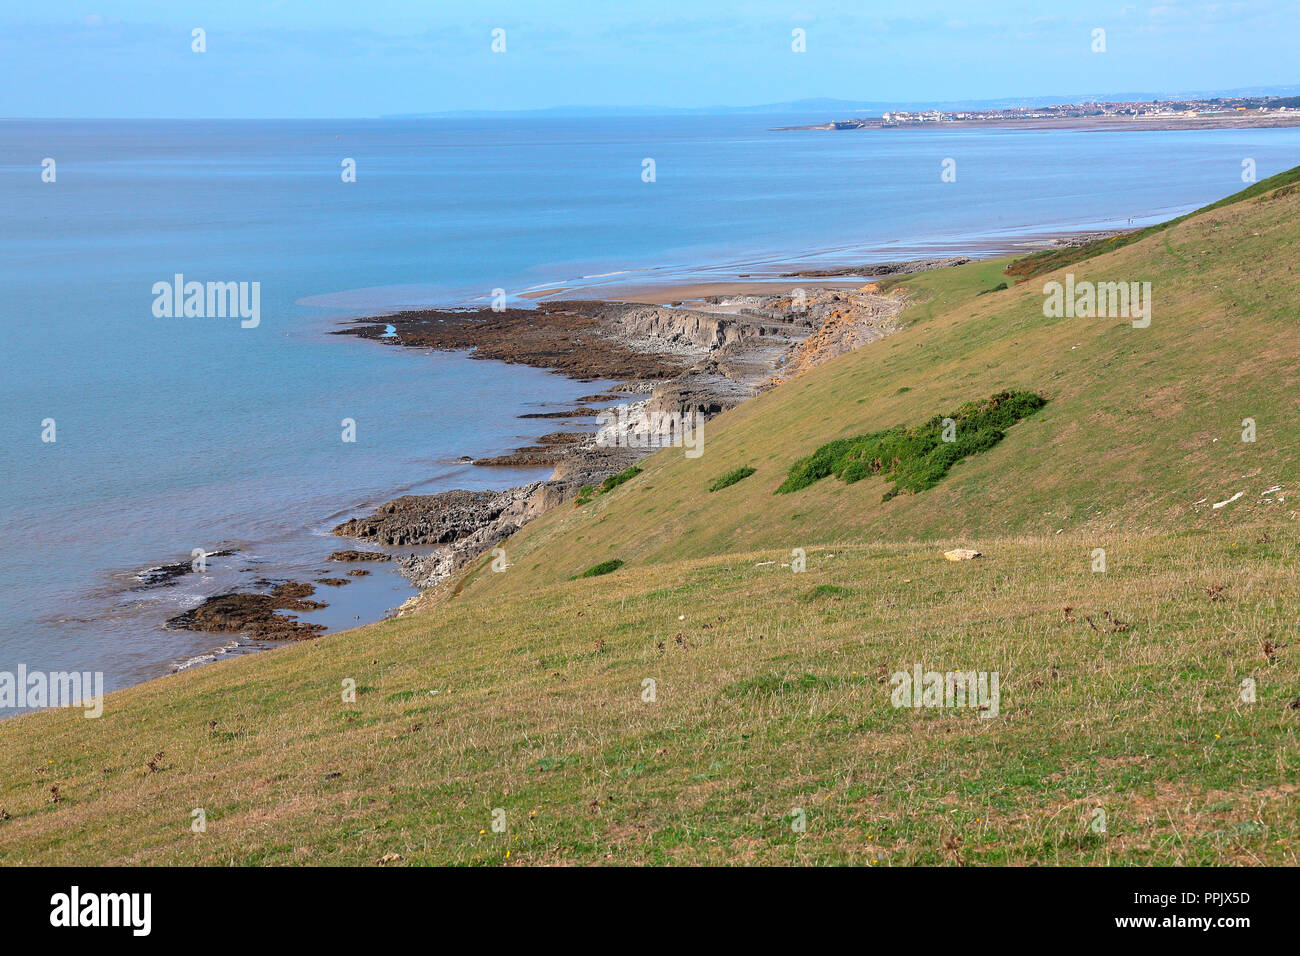 A view from the clifftop looking down onto the rocky promontary and sandy beaches of Ogmore by sea with a low tide exposing the sands. - Stock Image